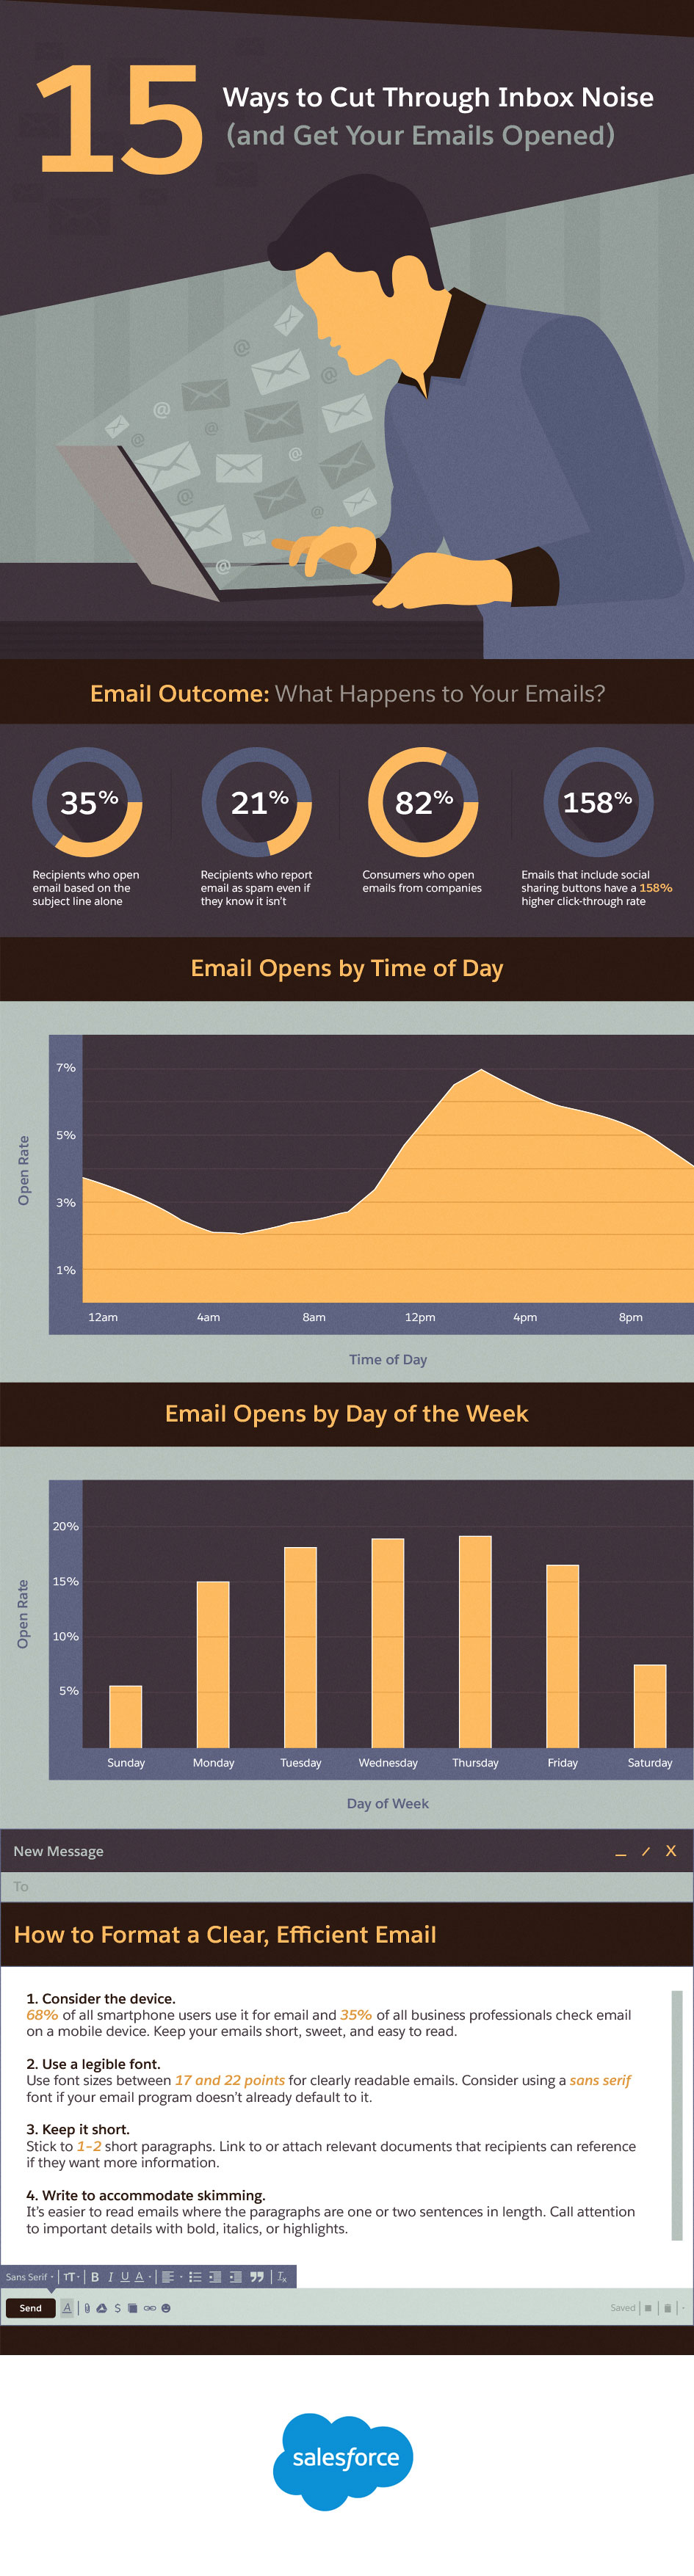 15 Ways to Cut Through Inbox Noise (and Get Your Emails Opened)